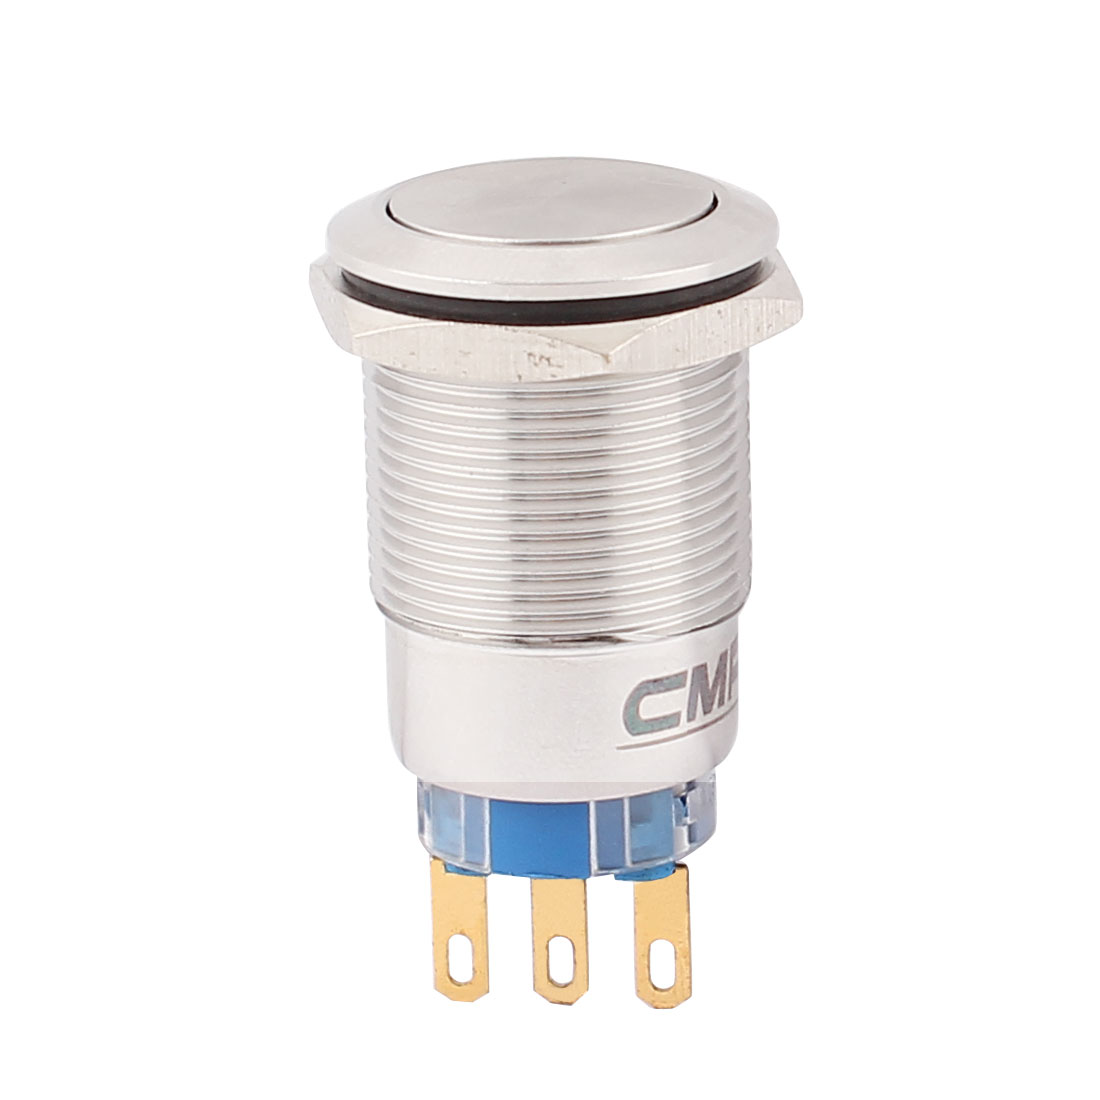 19mm Mounted Thread 3 Pins SPDT 16mm Flat Head Momentary Push Button Switch